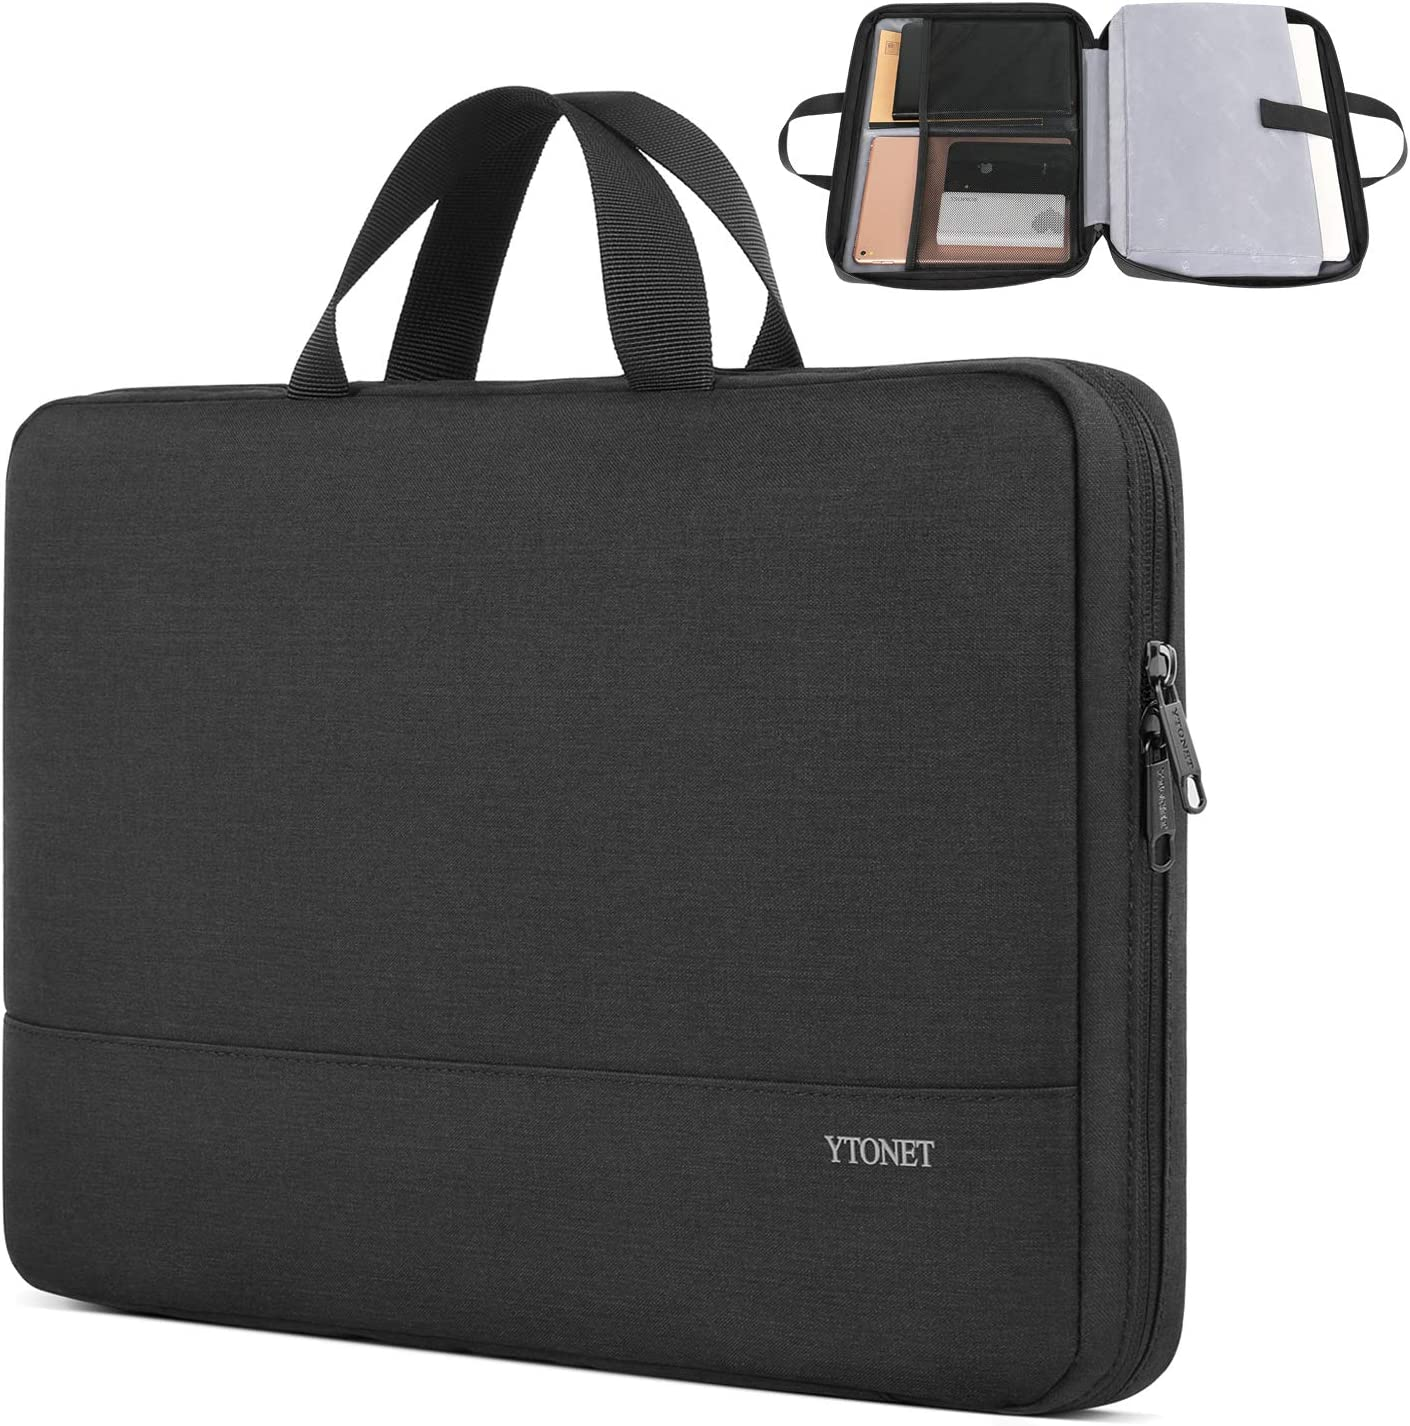 Ytonet Laptop Sleeve Case, 13.3 inch Slim Water Resistant TSA Laptop Case Cover, Durable Business Briefcase Handle Bag for 13-13.3 inch MacBook Pro, MacBook Air, HP Dell Lenovo Notebook, Black